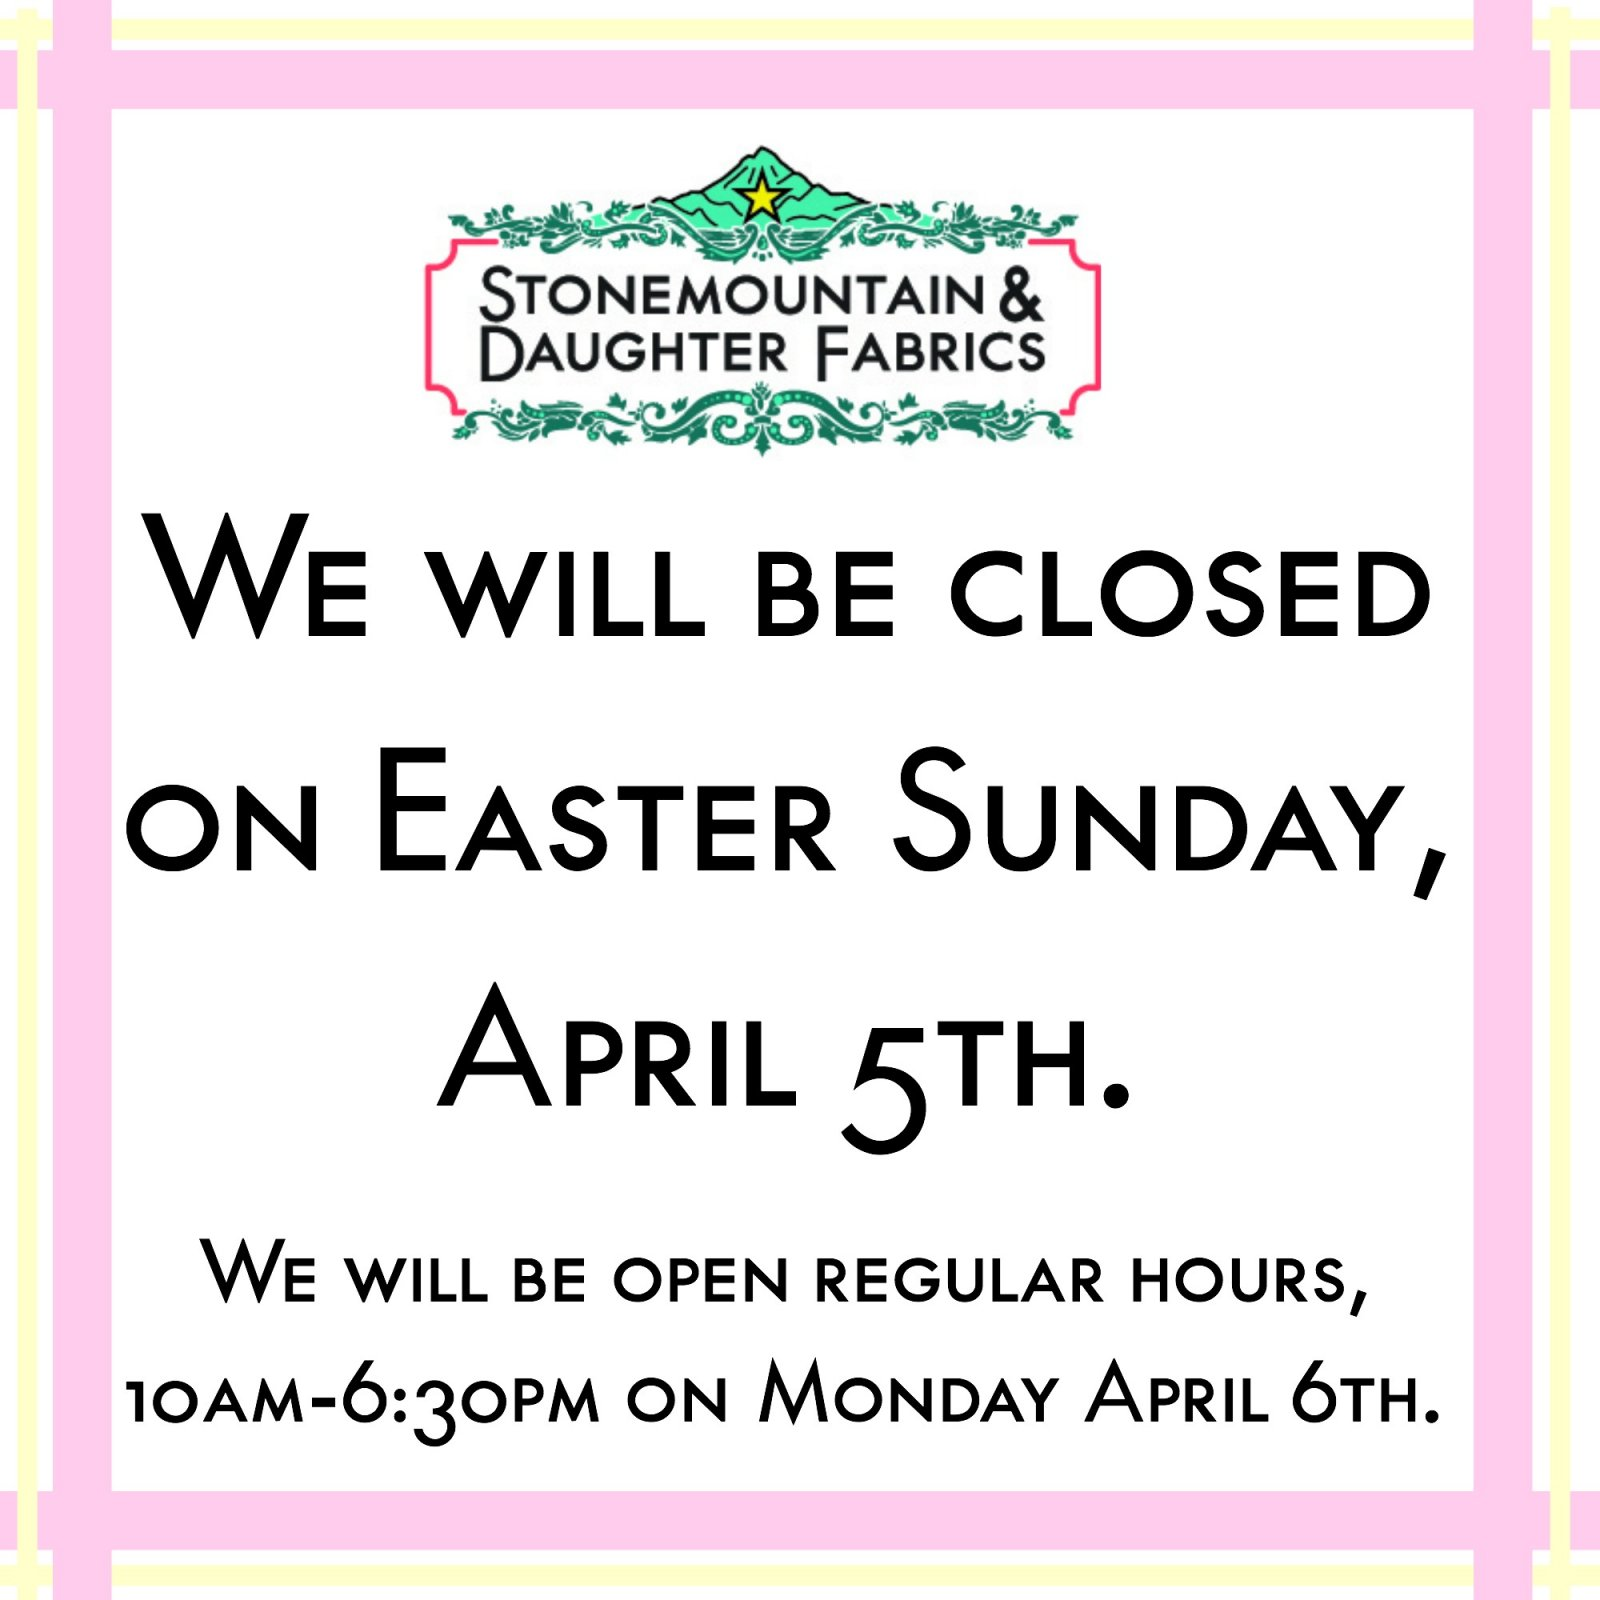 Office Closed Sign Template from easter-bunny-rabbit.com